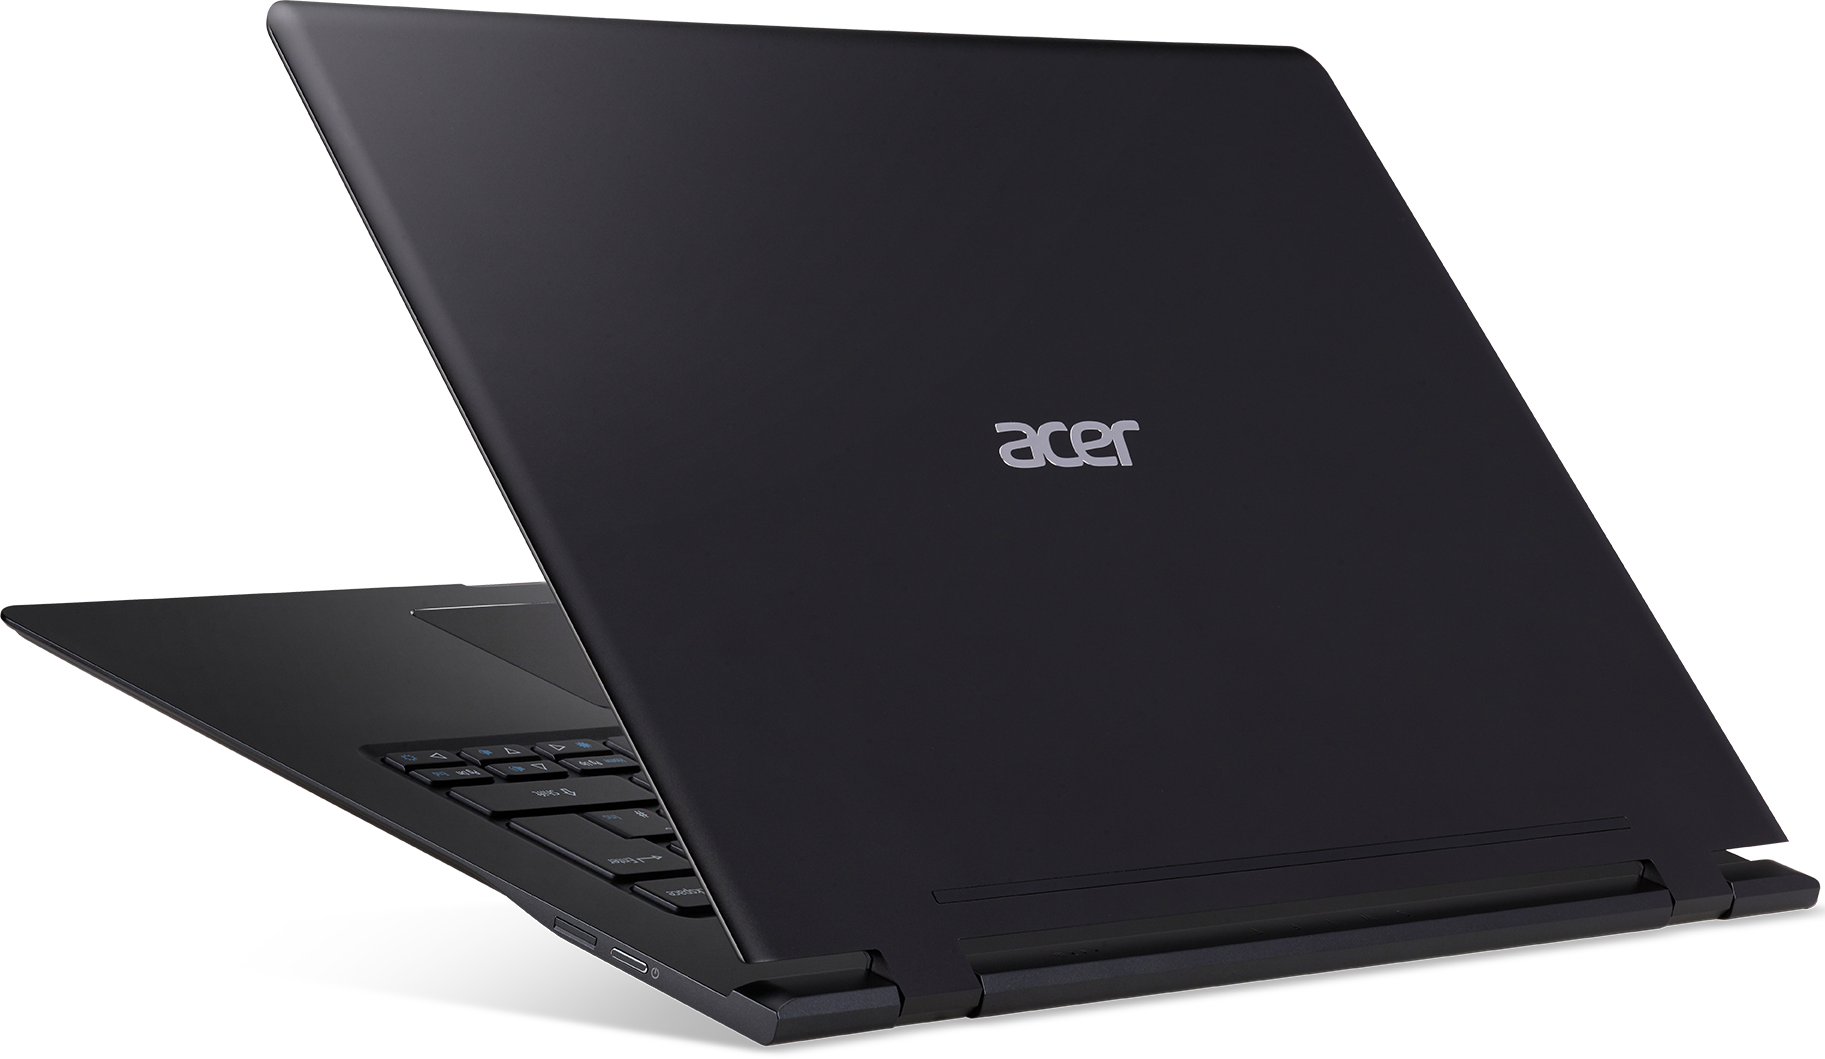 Acer's new Swift 7 claims 'world's thinnest laptop' crown